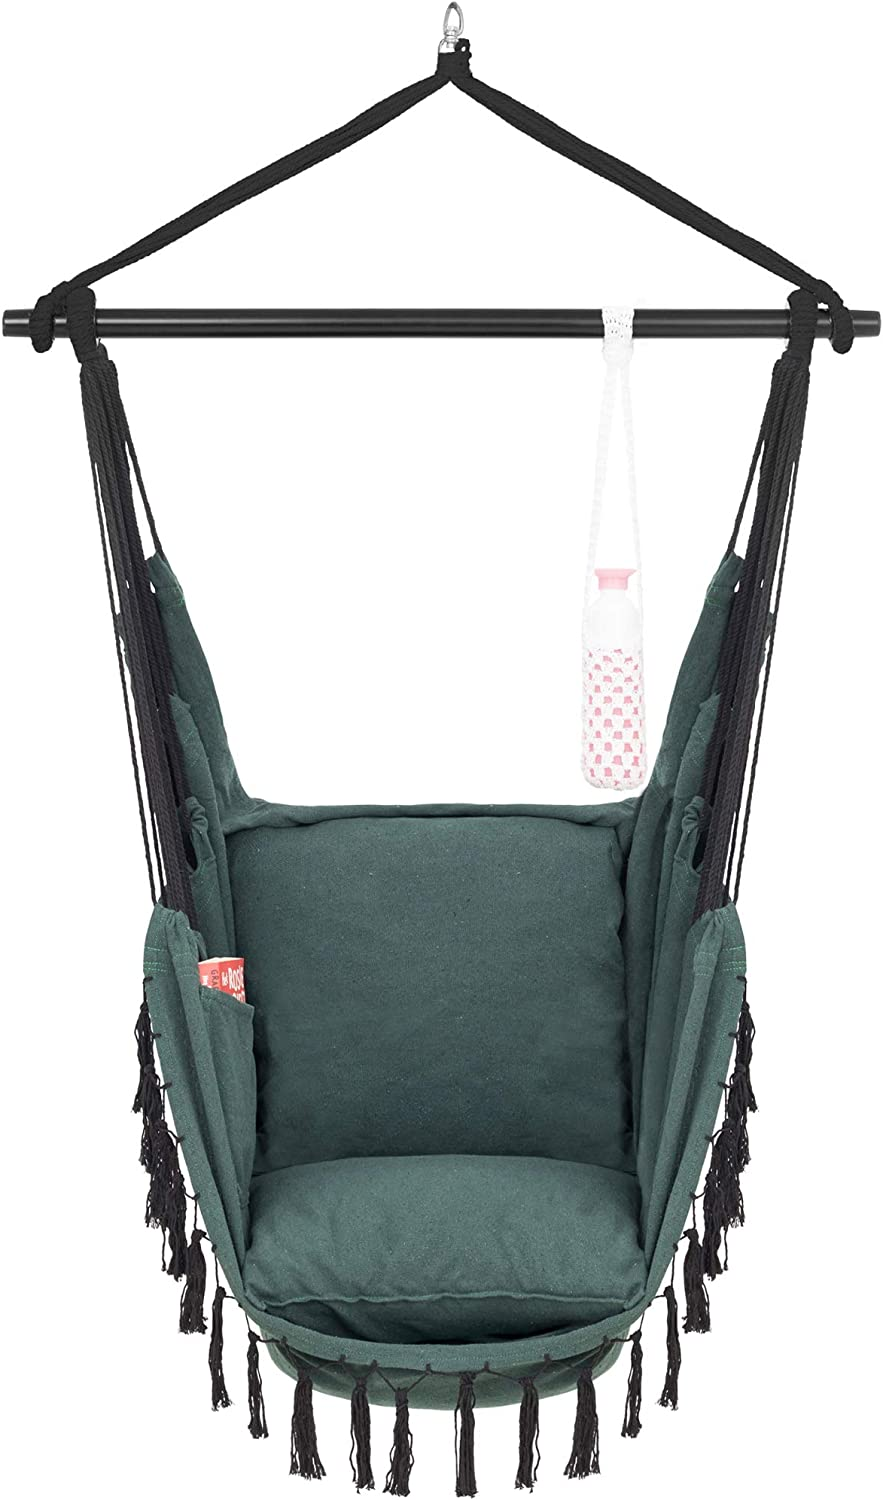 VITA5 Hanging Max 75% OFF Chair 2 Max 53% OFF Cushions Drinks We Book Holder lbs 500